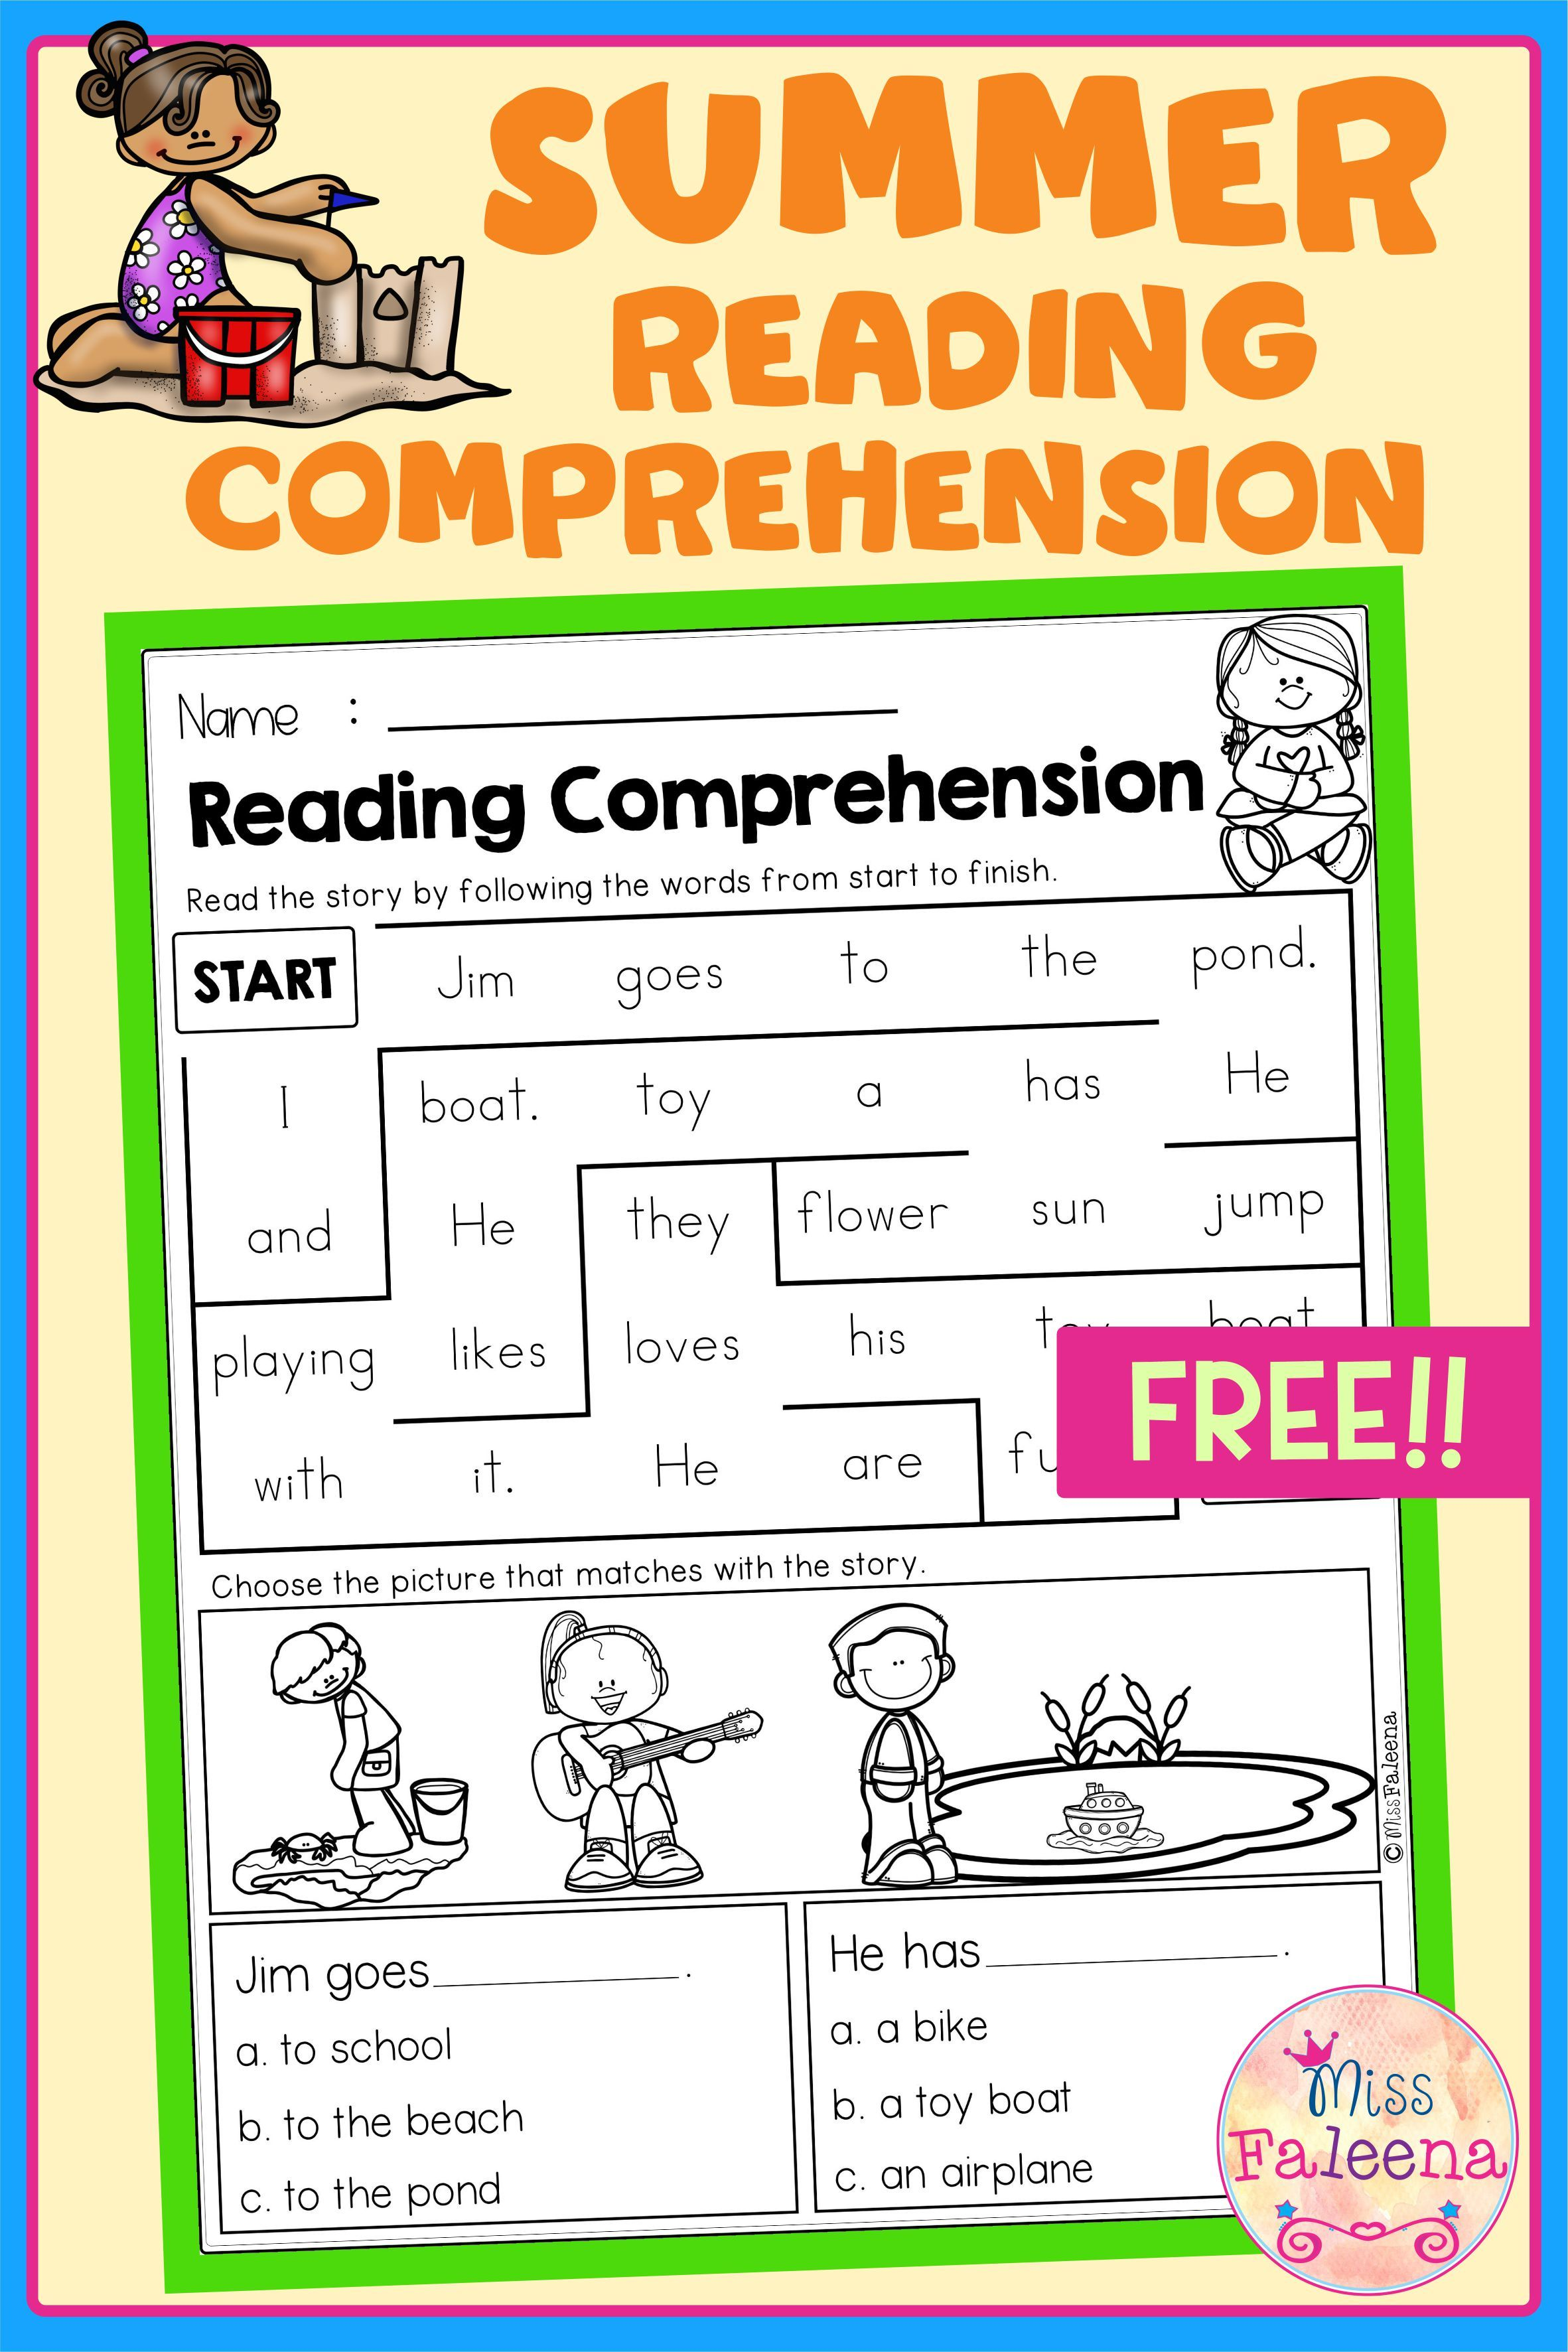 Free Summer Reading Comprehension In 2021 Summer Reading Comprehension Reading Comprehension First Grade Reading Comprehension [ 3544 x 2363 Pixel ]